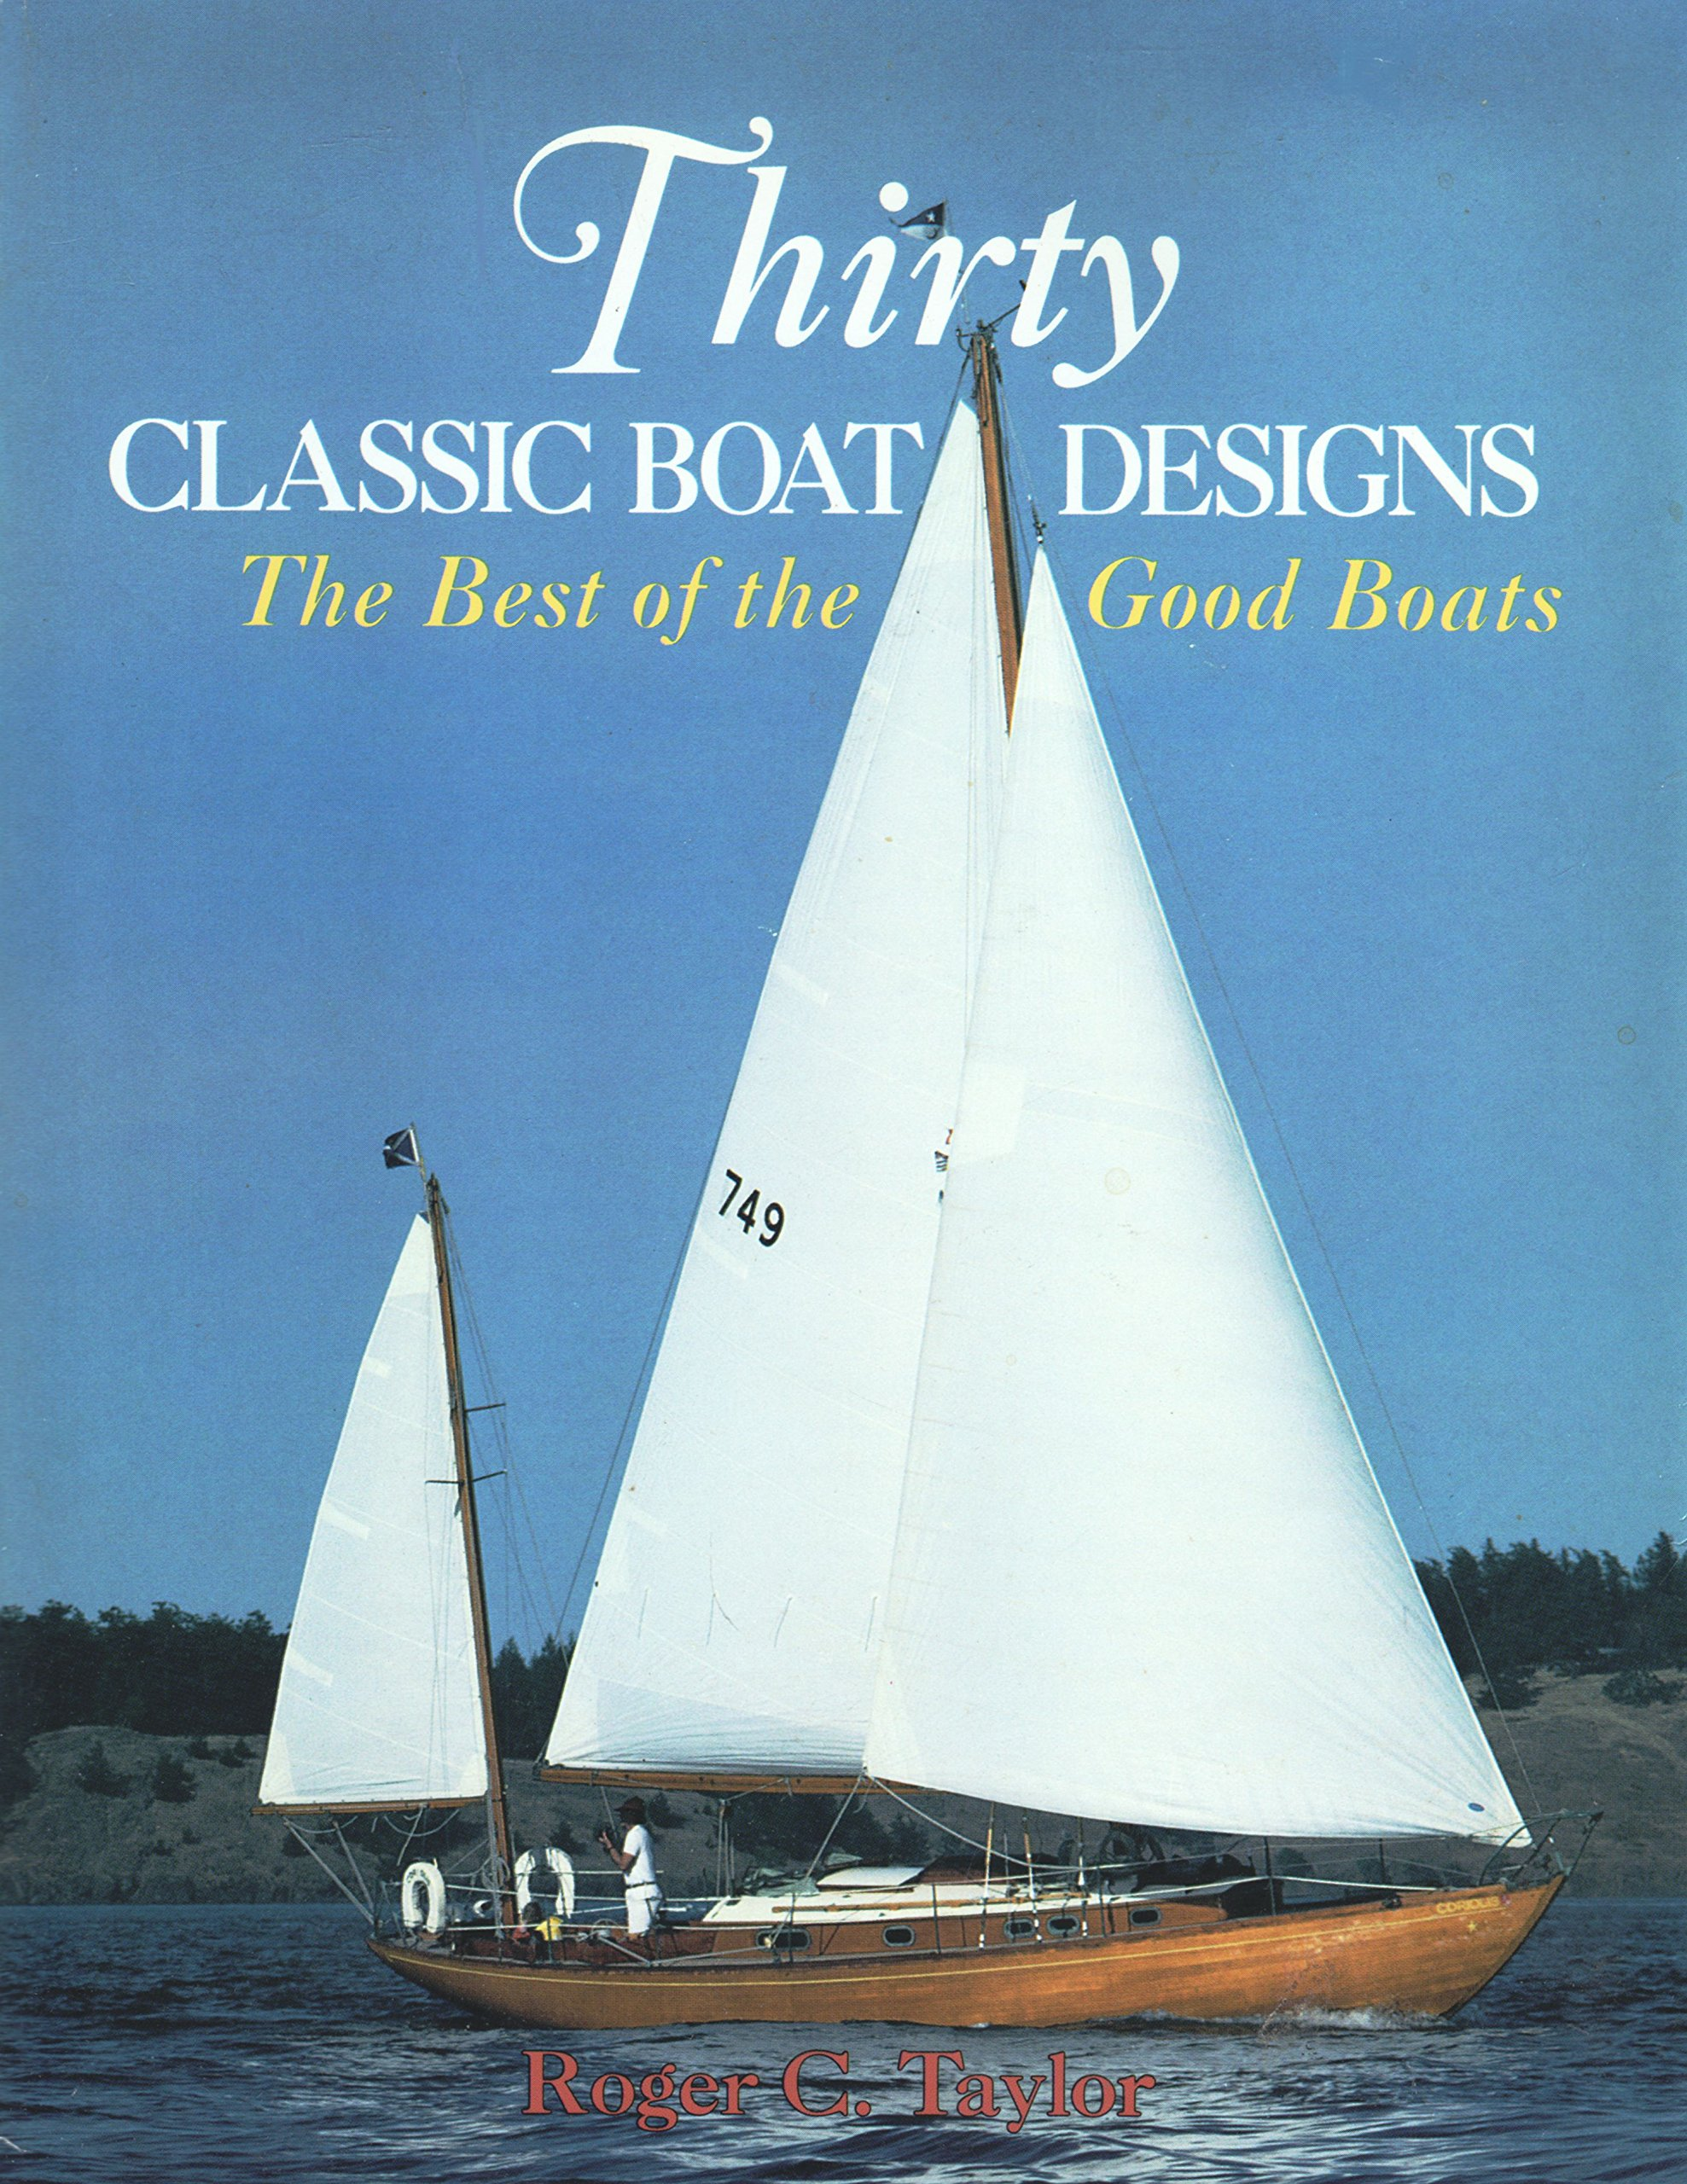 Thirty Classic Boat Designs: The Best of the Good Boats